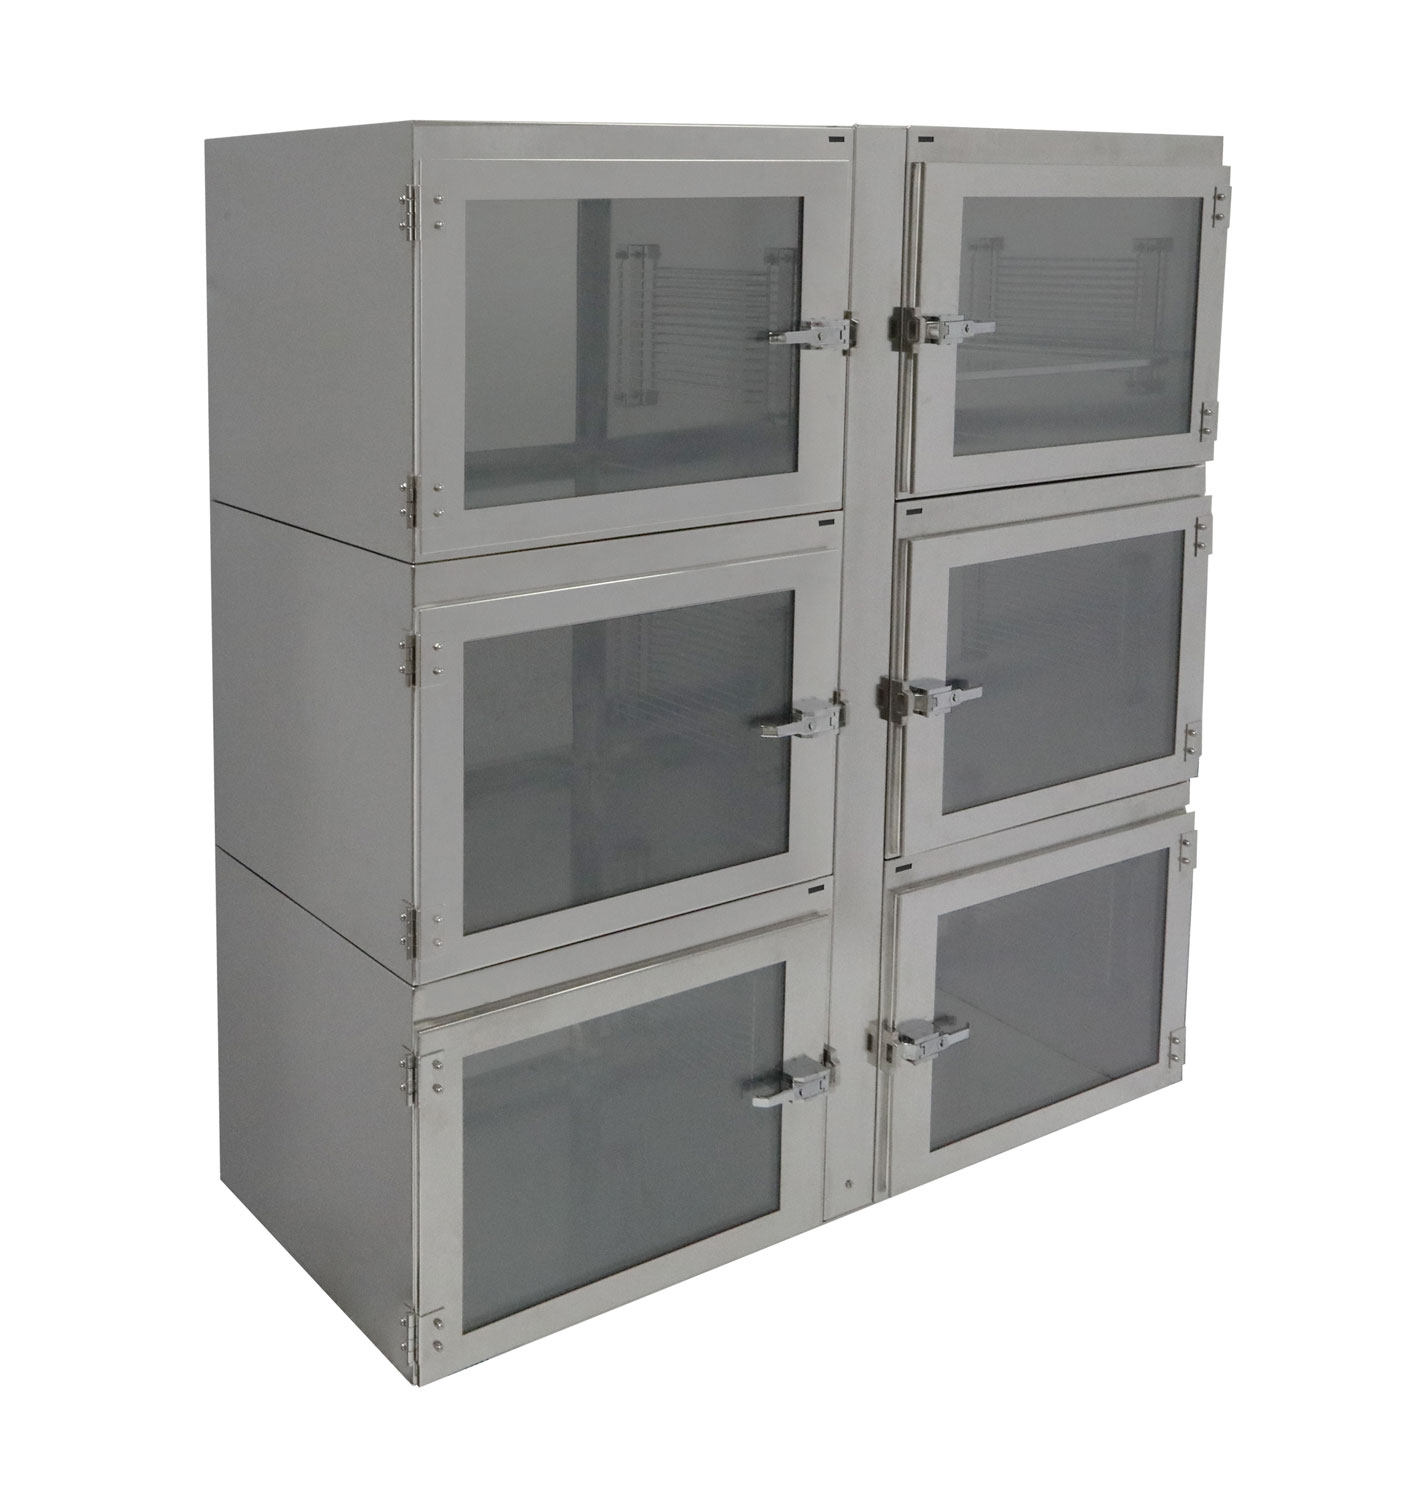 Six Chamber Adjust-a-Shelf Stainless Steel Desiccator Cabinet | Terra Universal